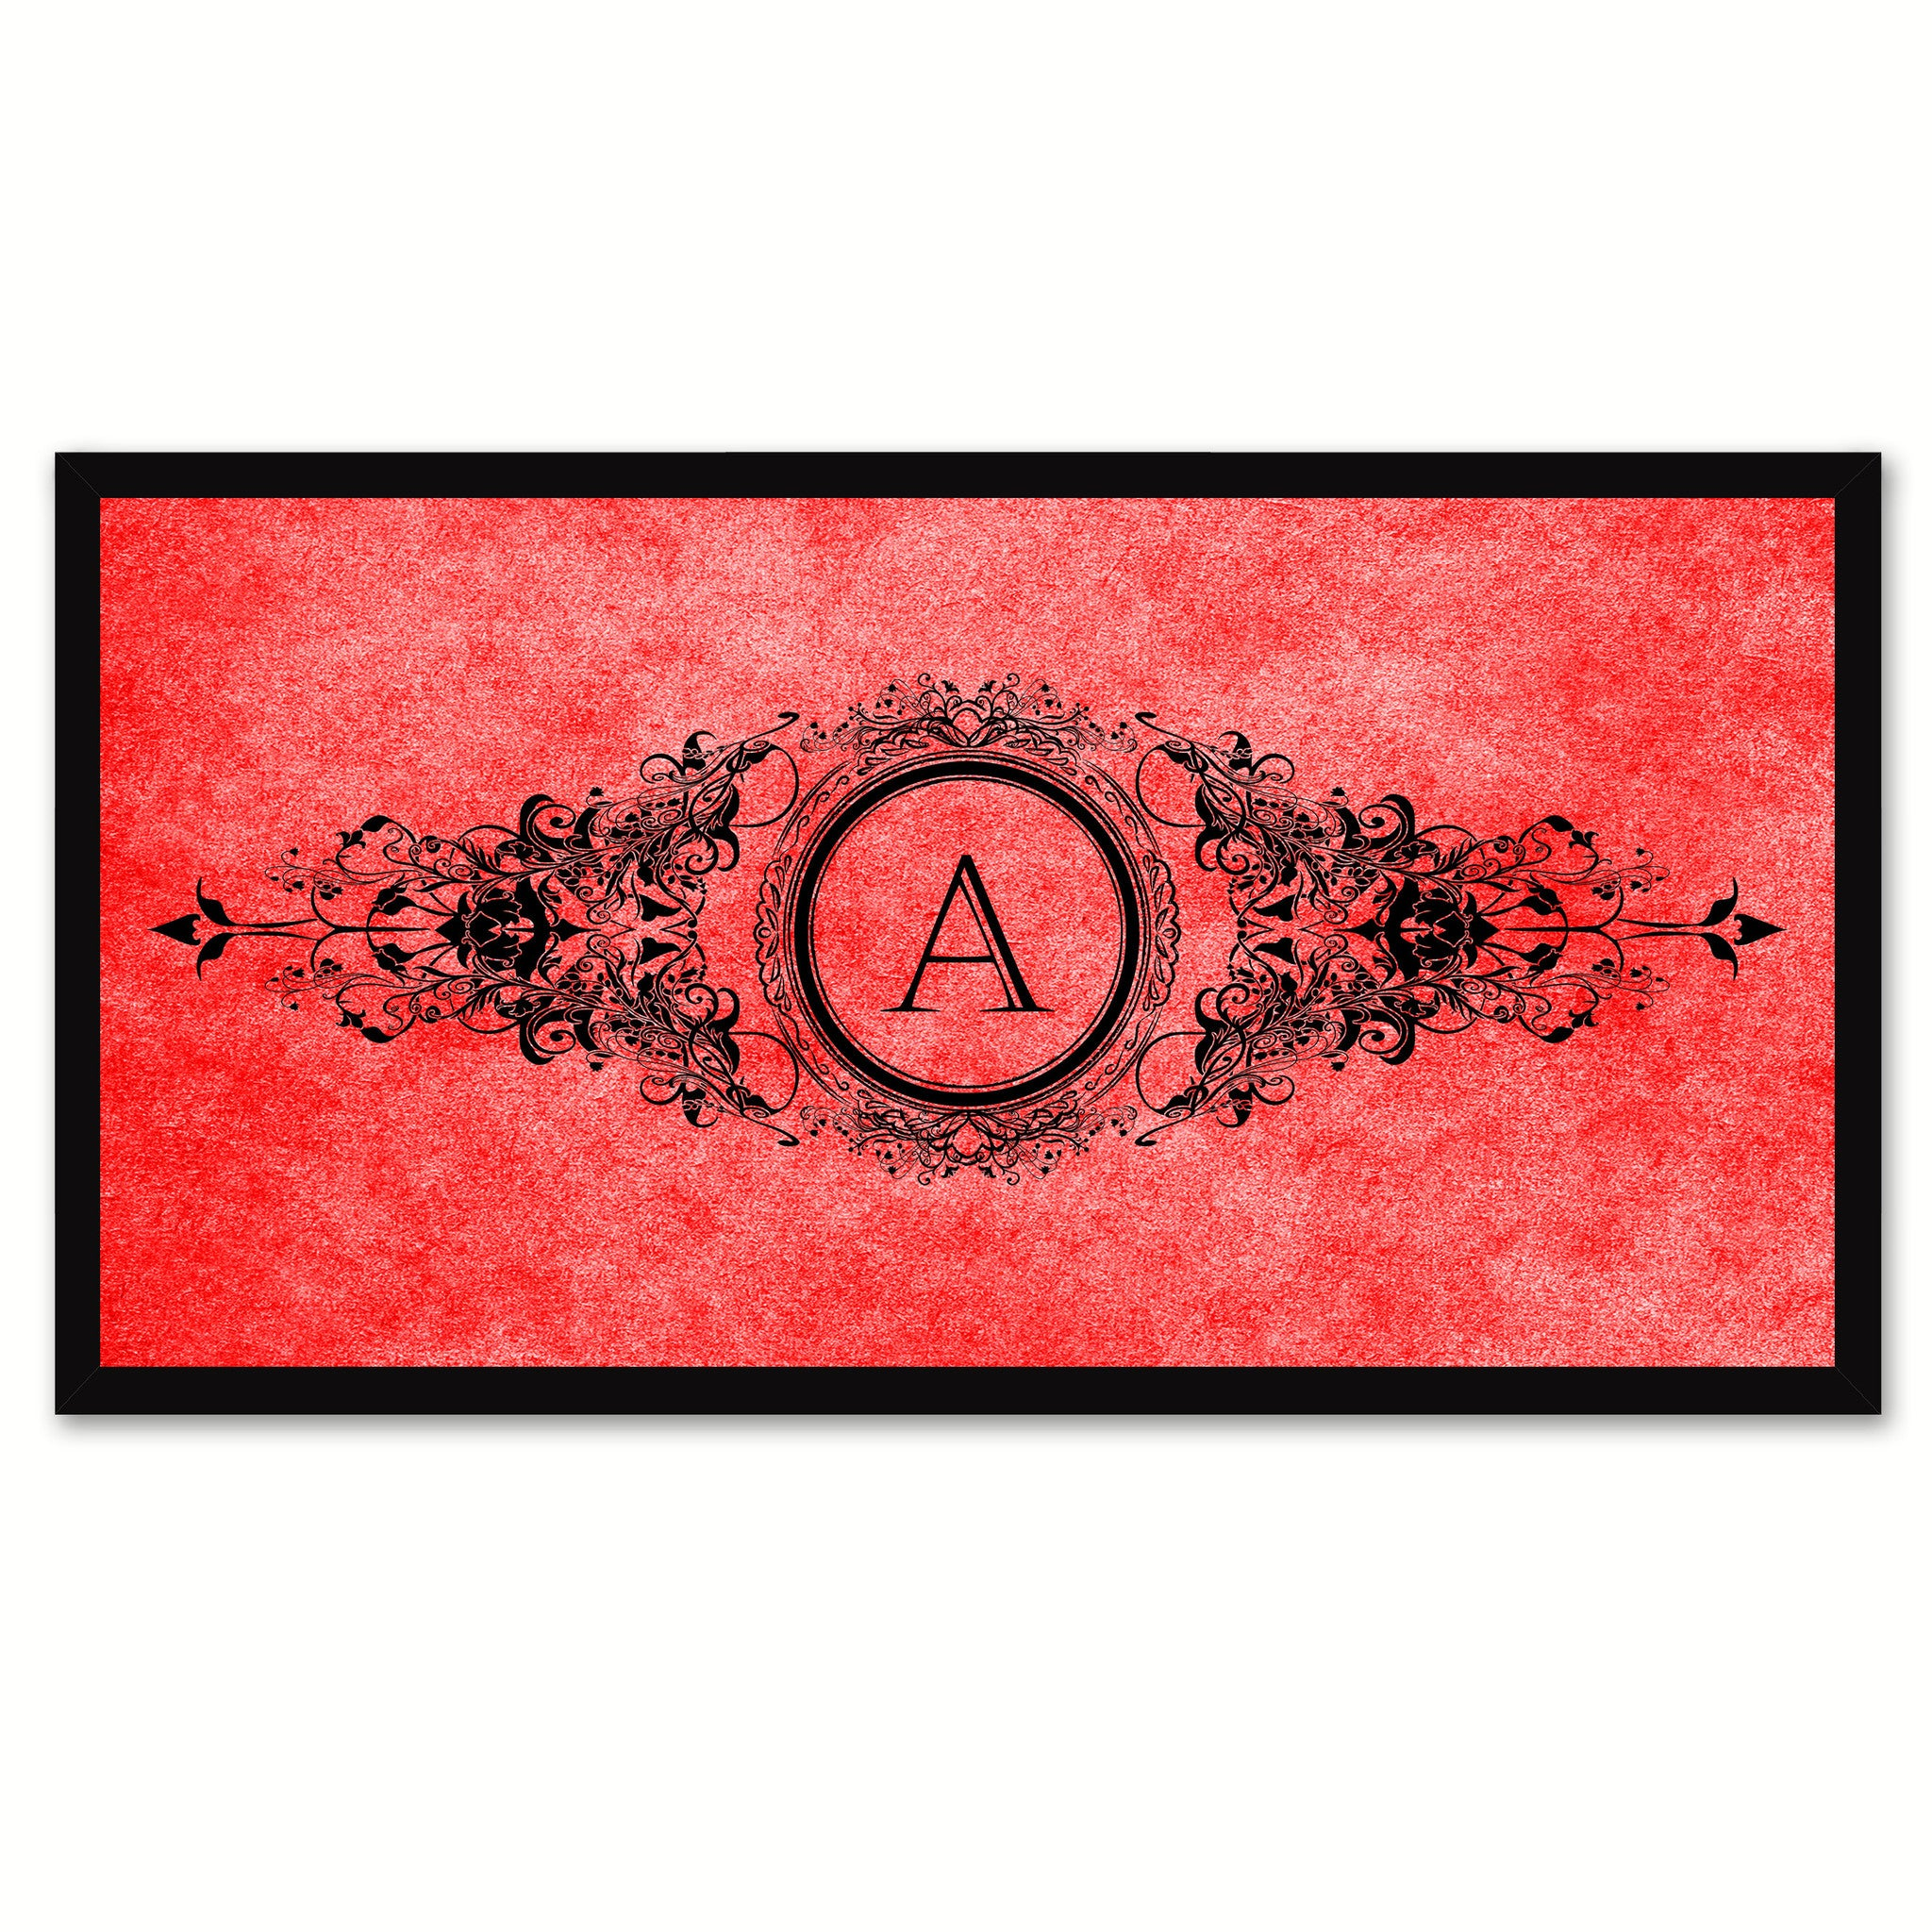 Alphabet Letter A Red Canvas Print Black Frame Kids Bedroom Wall Décor Home Art